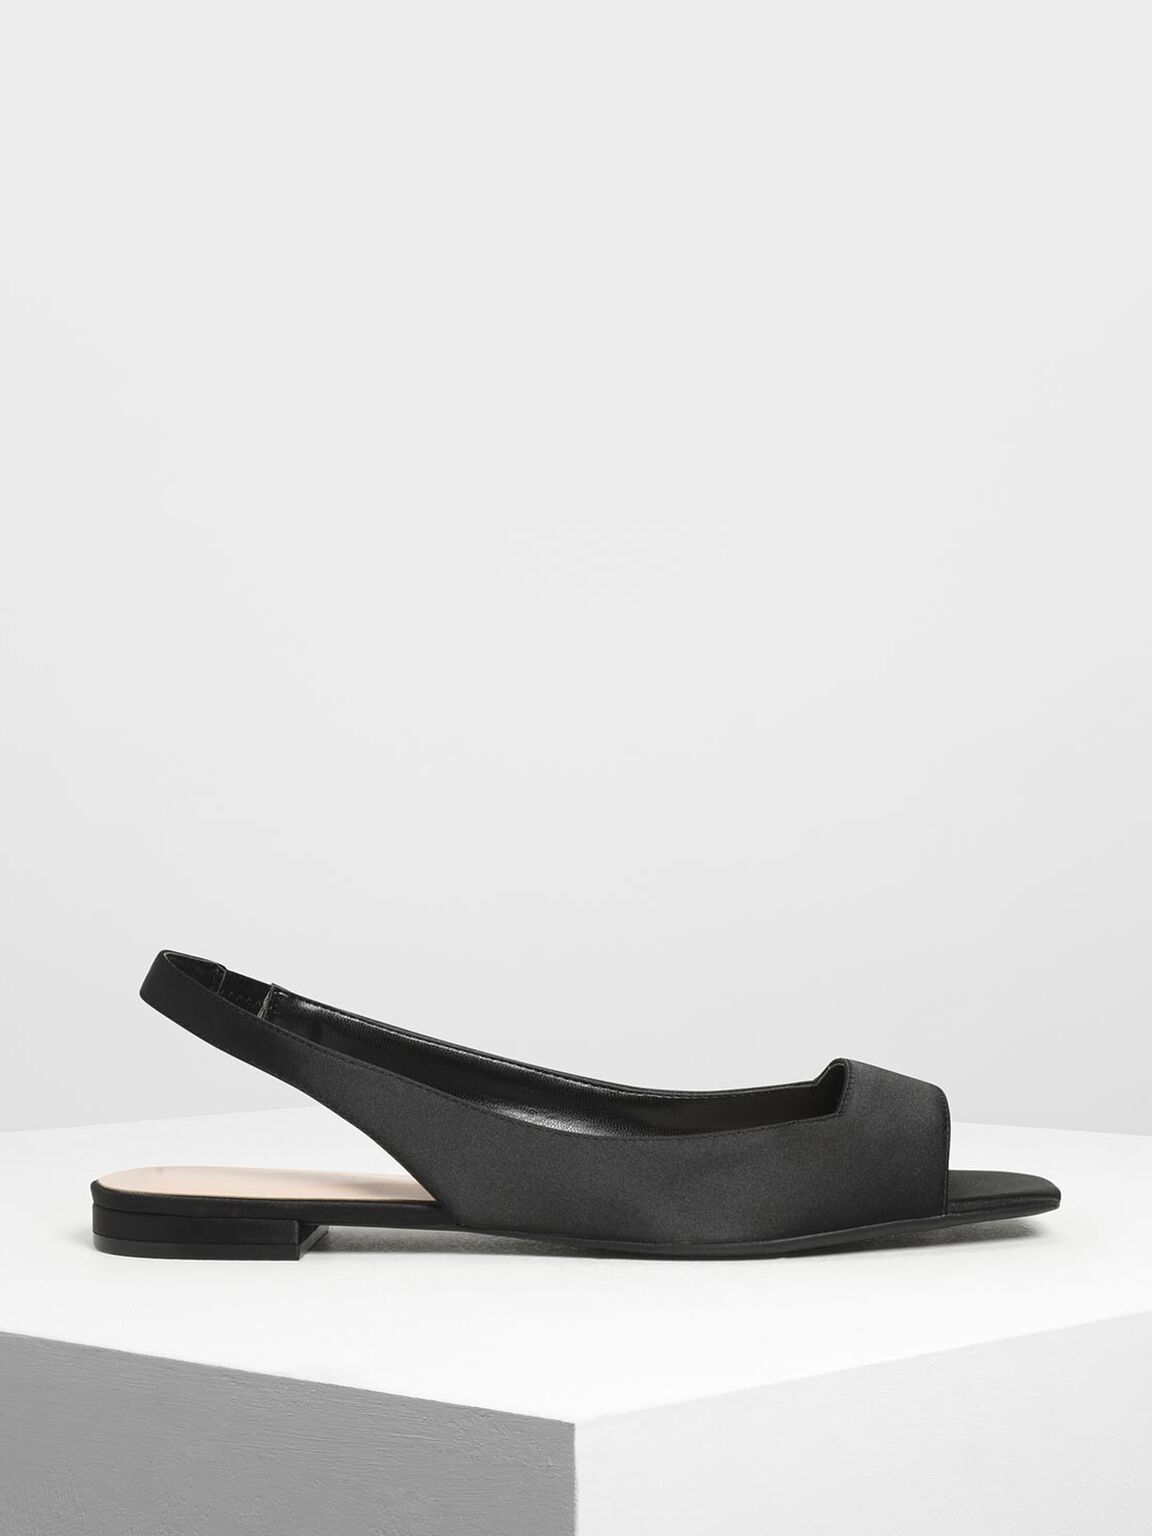 Satin Square Toe Slingback Flats, Black, hi-res